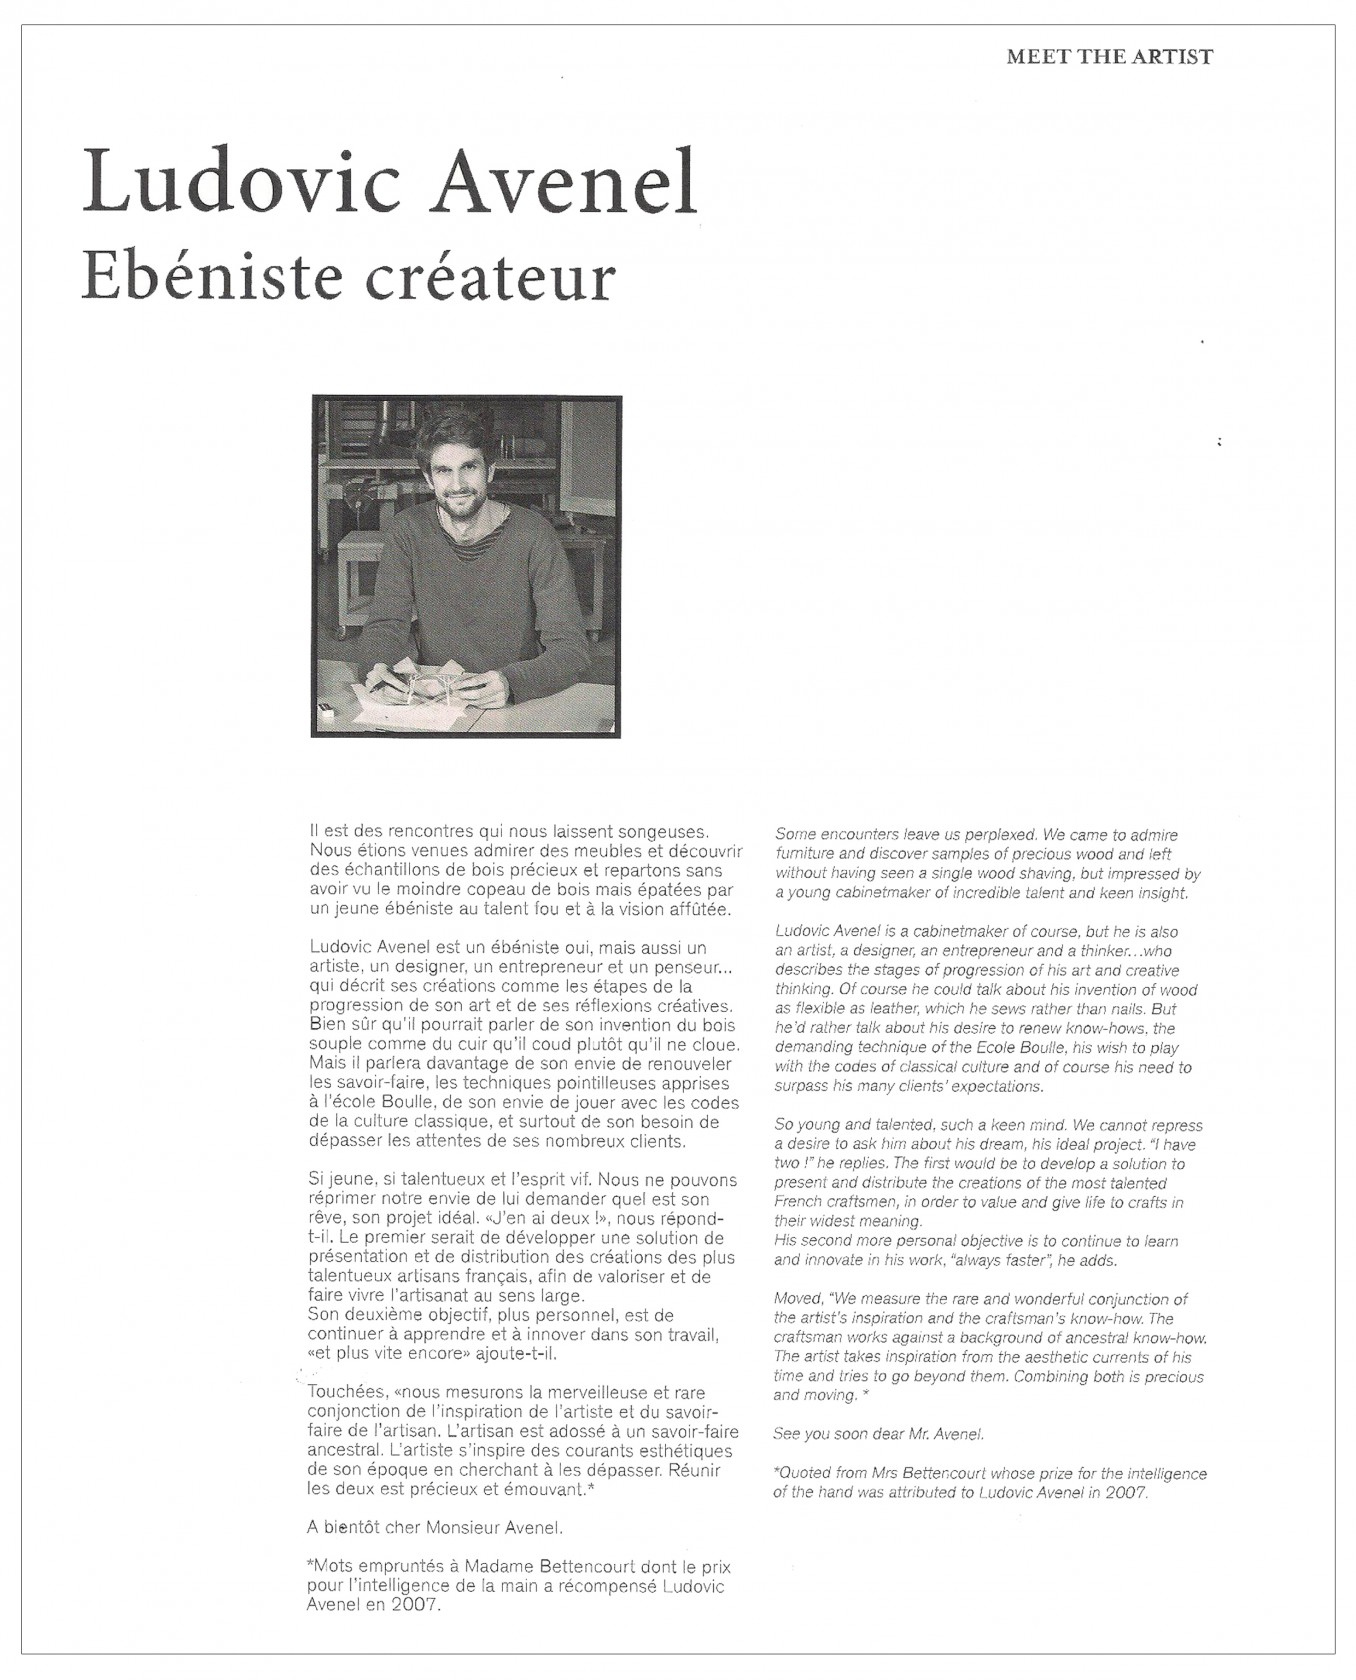 Ludovic AVENEL cabinet maker Paris - Ludovic_Avenel_press_l'aventure_créateur_design_sur mesure_2